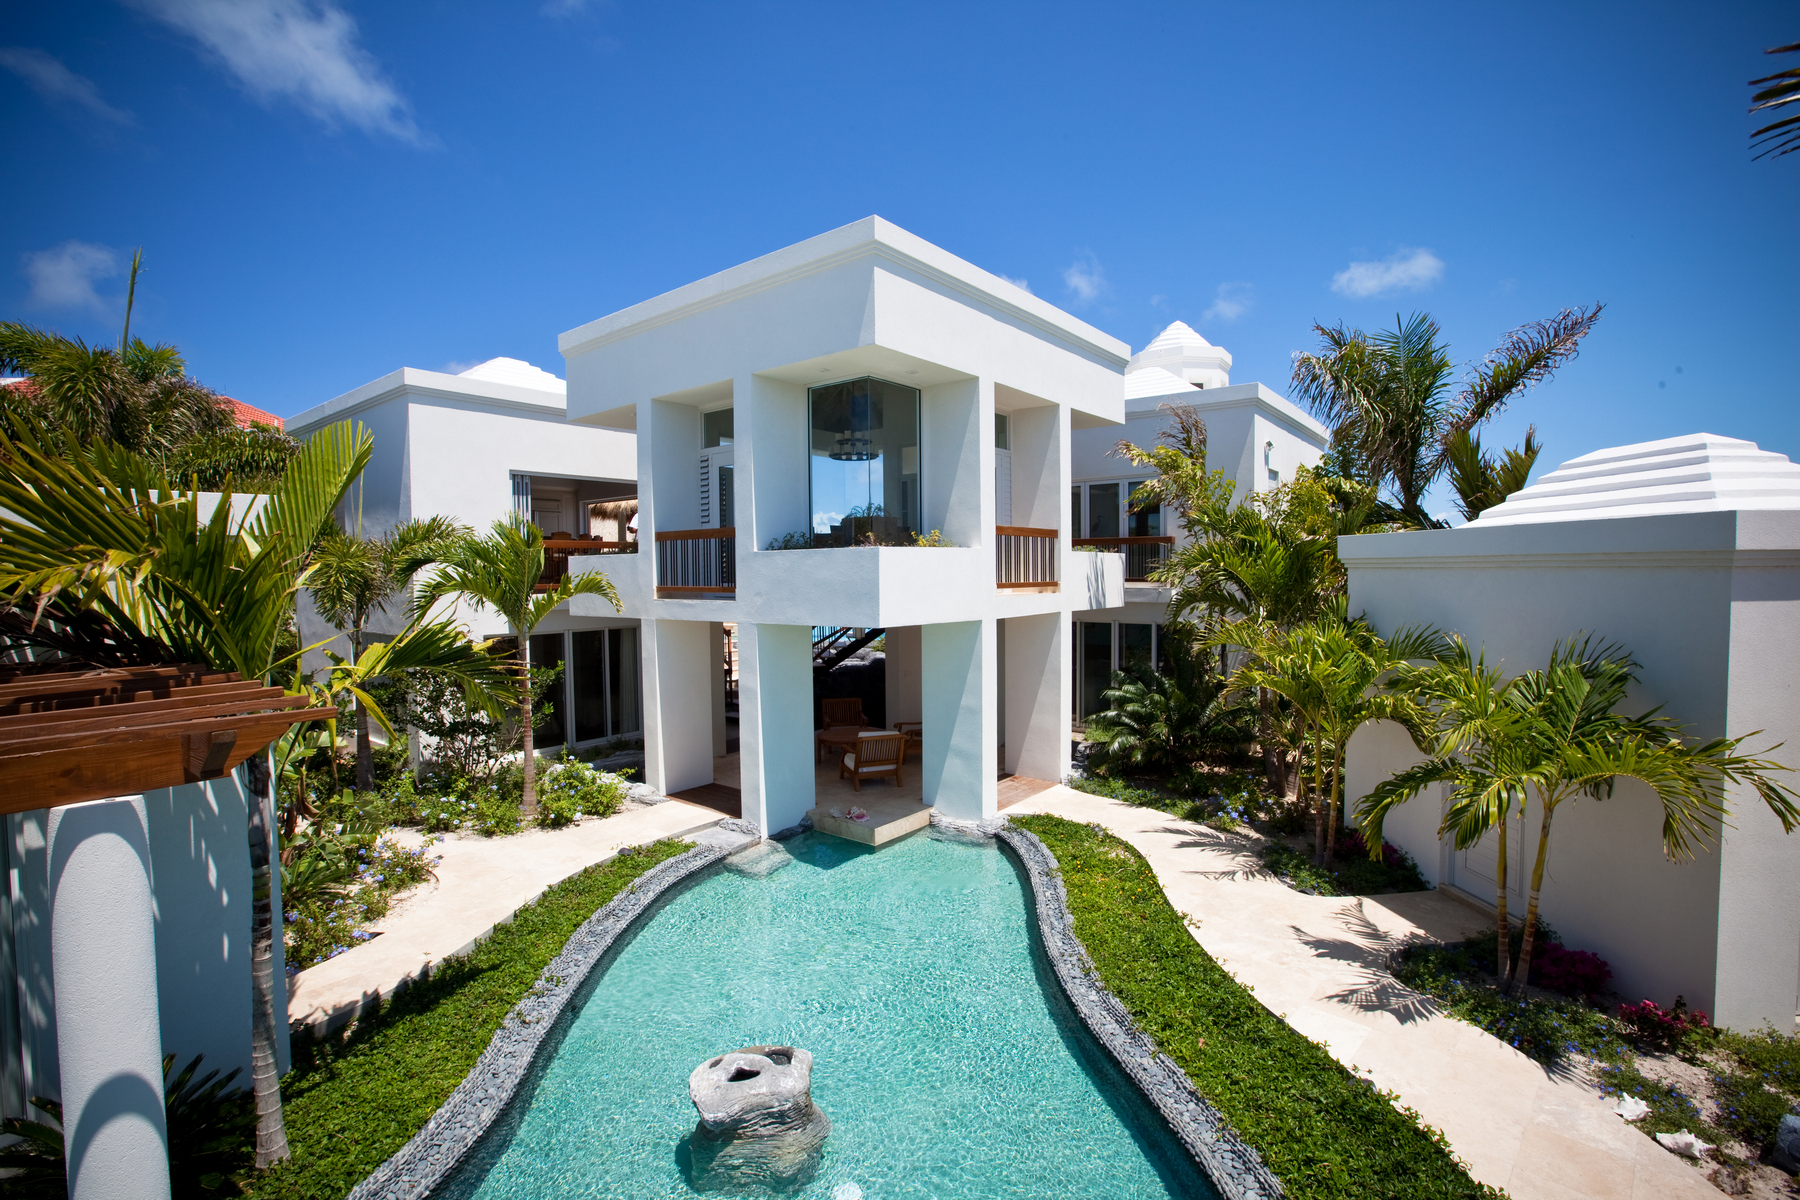 Single Family Home for Sale at Turtle Breeze Villa Beachfront Turtle Cove, Providenciales TC Turks And Caicos Islands